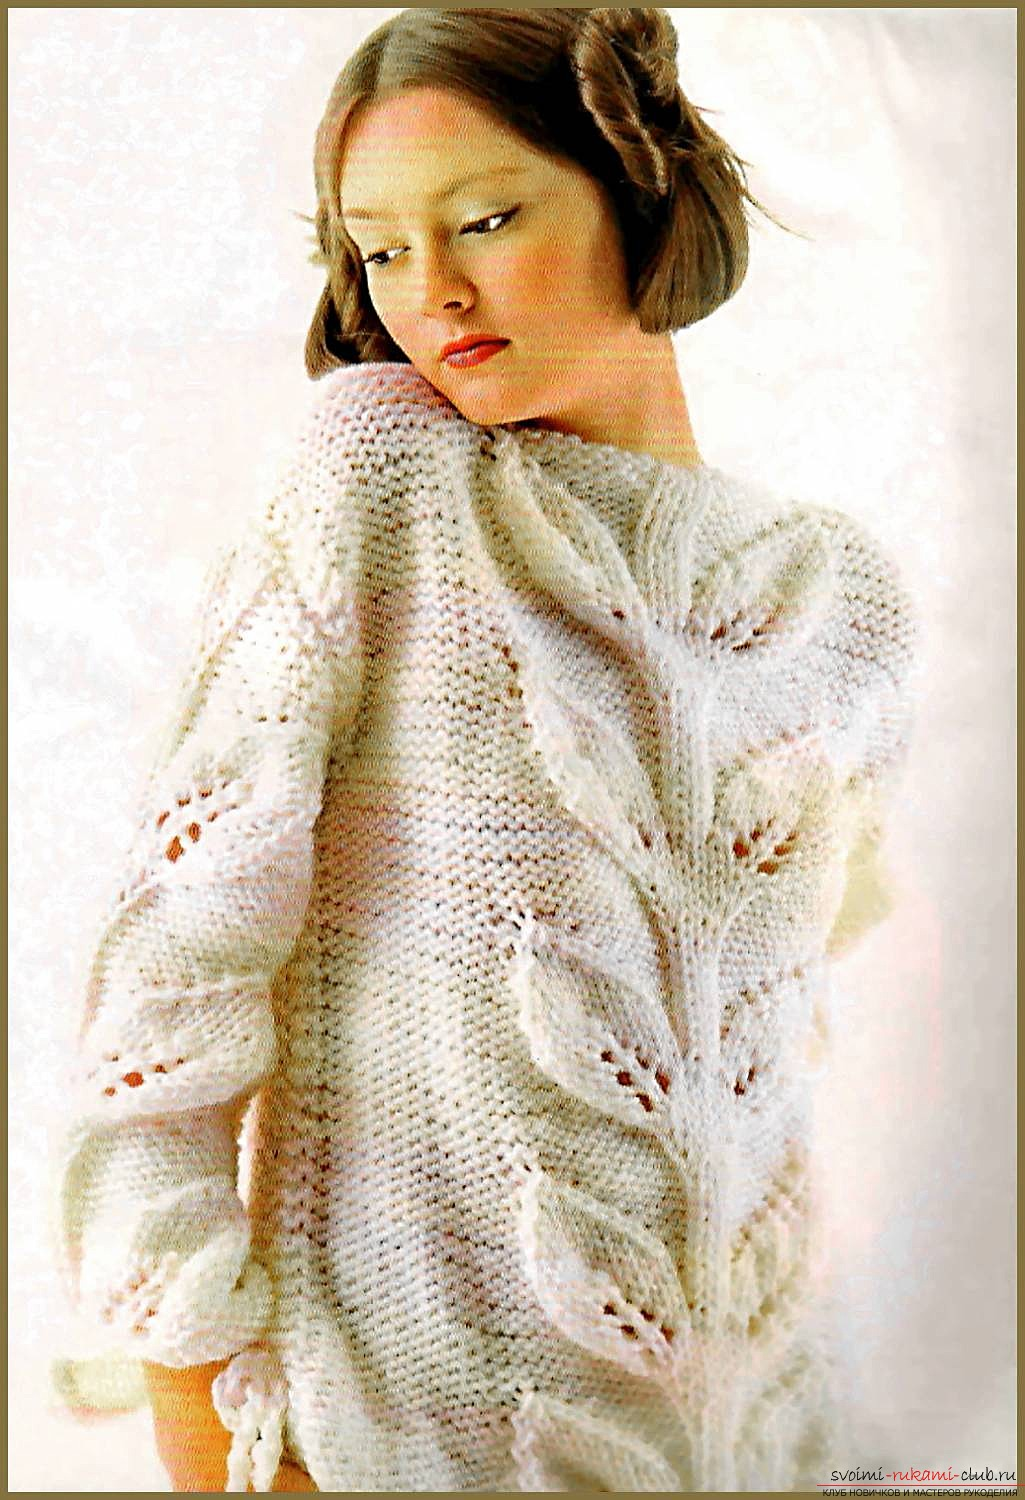 knitted knitting needles exquisite cardigan for a romantic nature. Photo №1